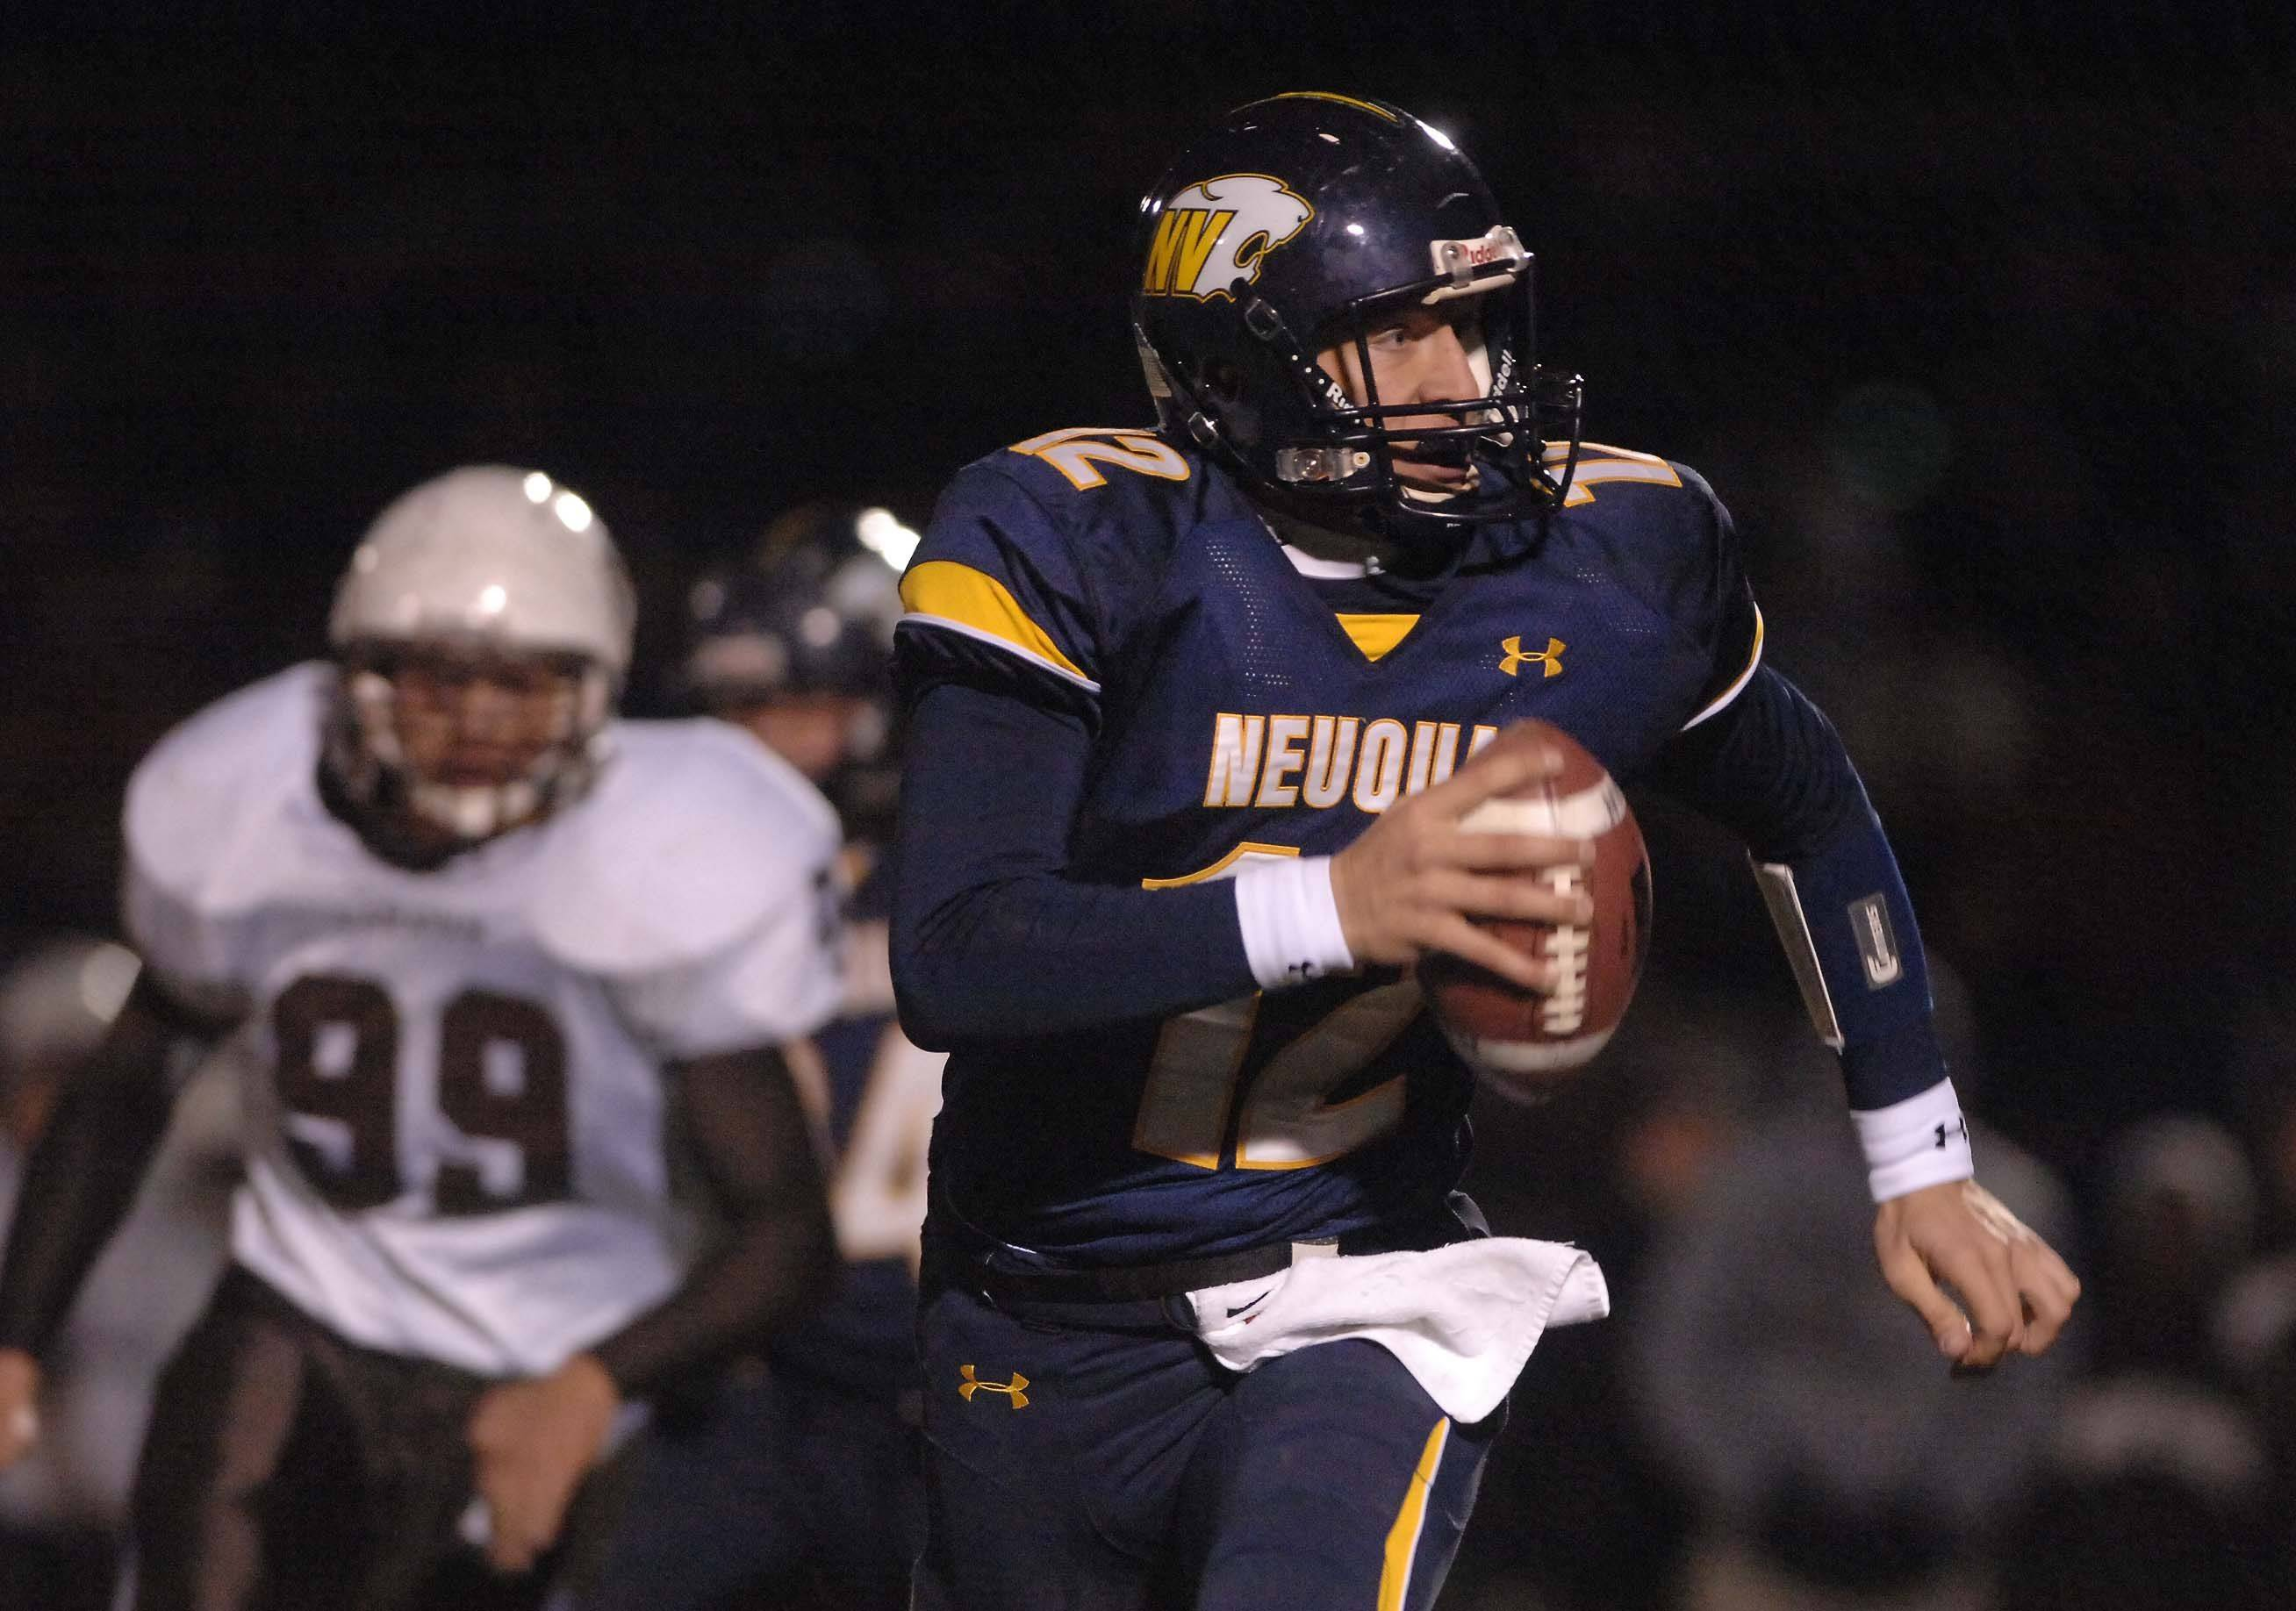 Jeff Samuel of Neuqua Valley looks for an open receiver.